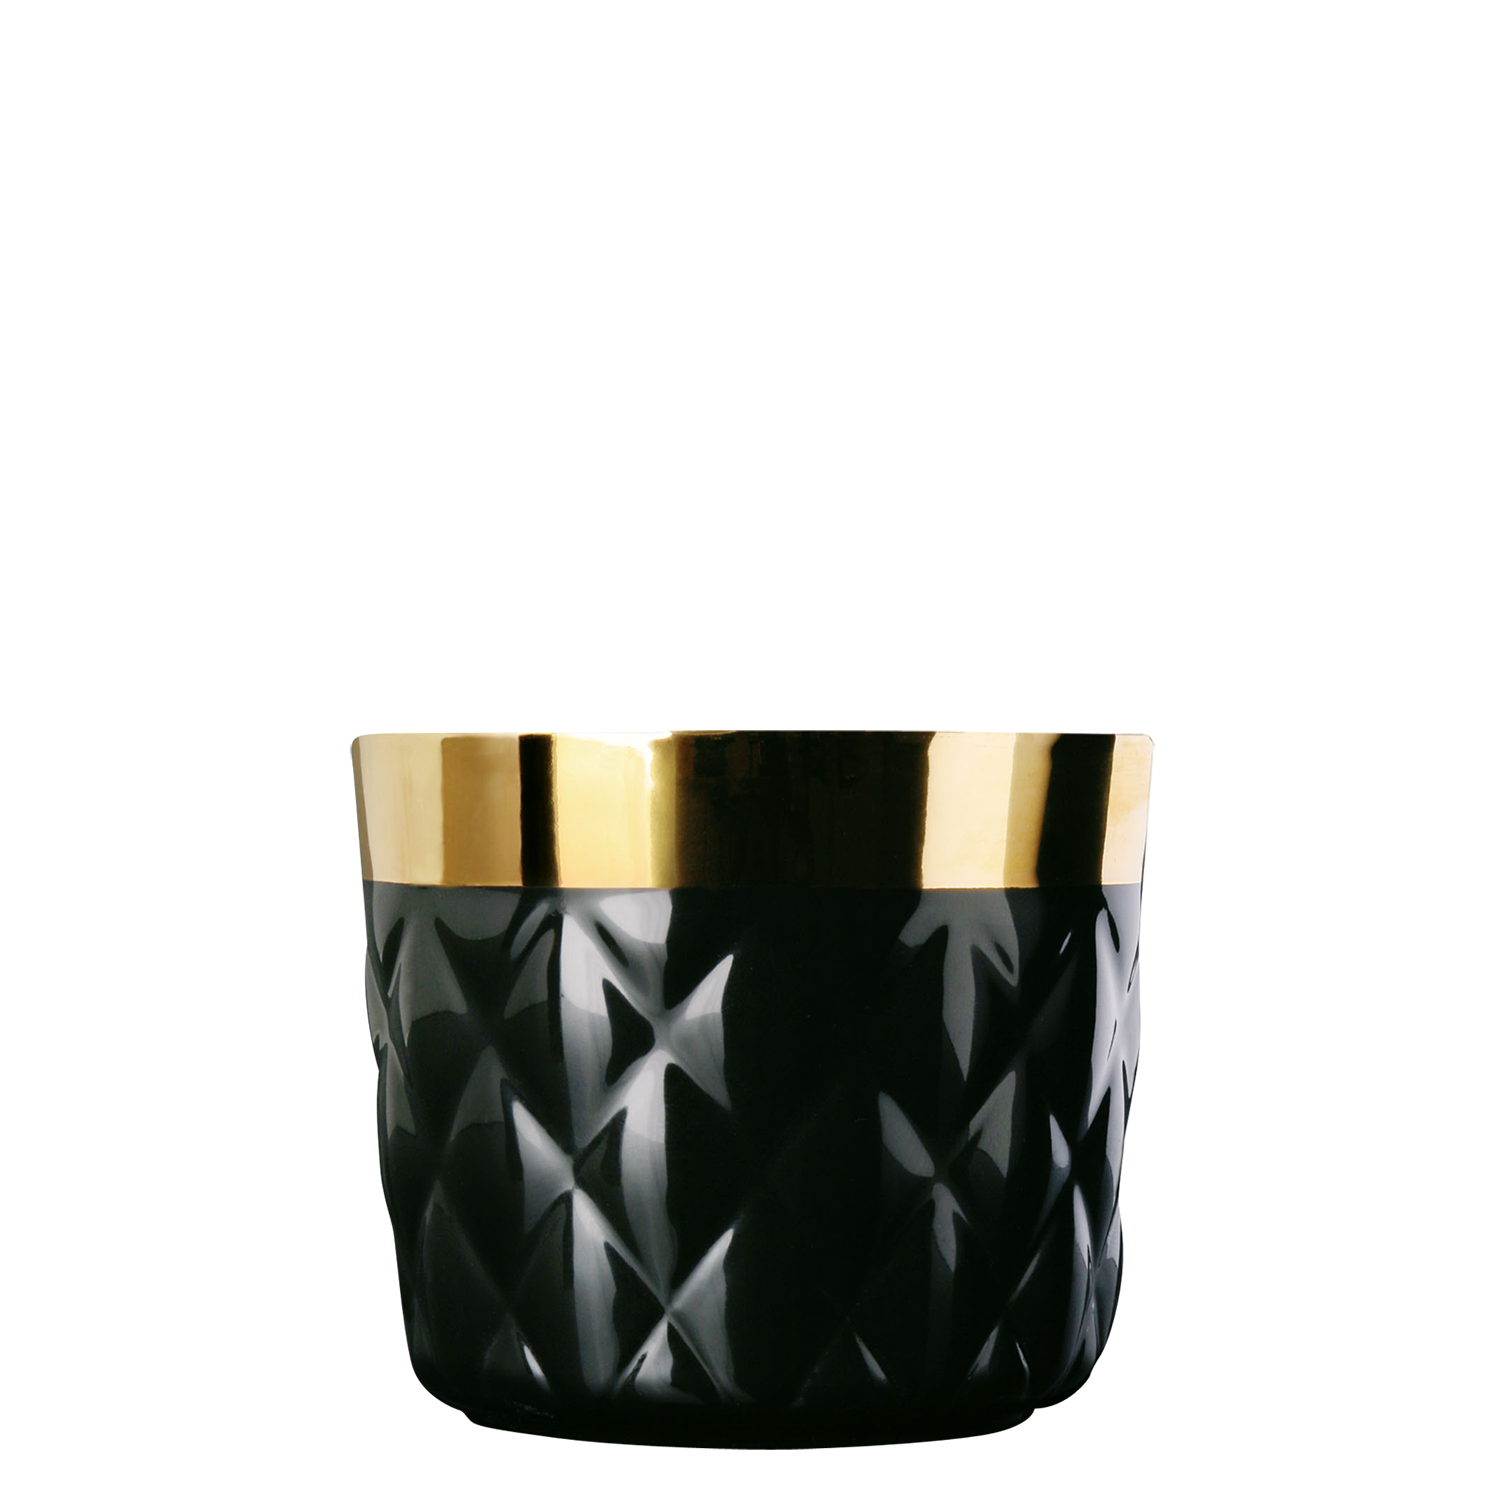 Champagnerbecher Noir, Cushion, Kissenrelief